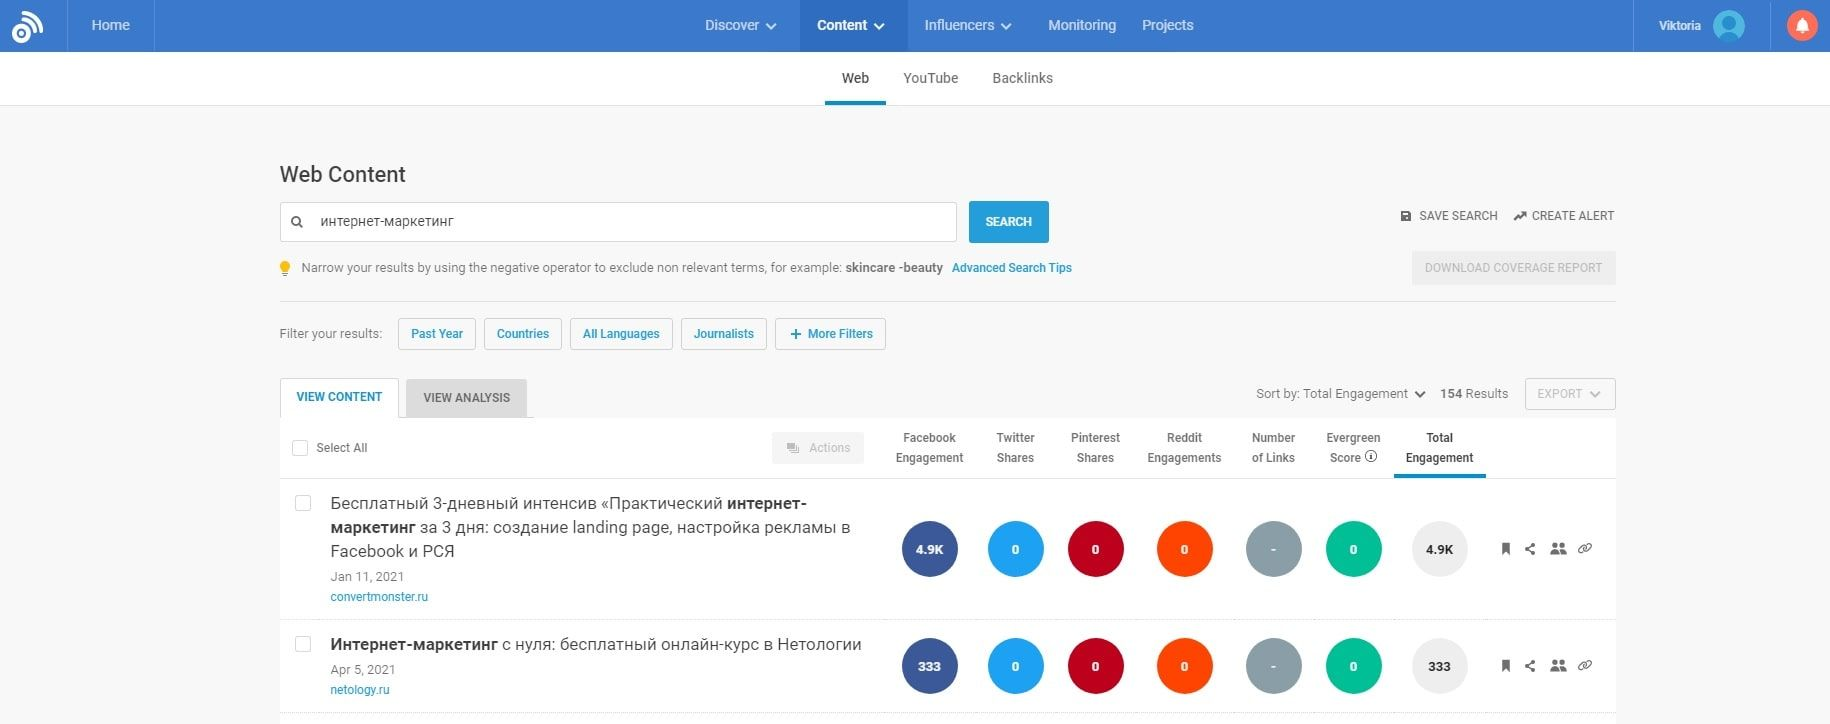 Simple and intuitive BuzzSumo interface - enter a request and get a list of top publications